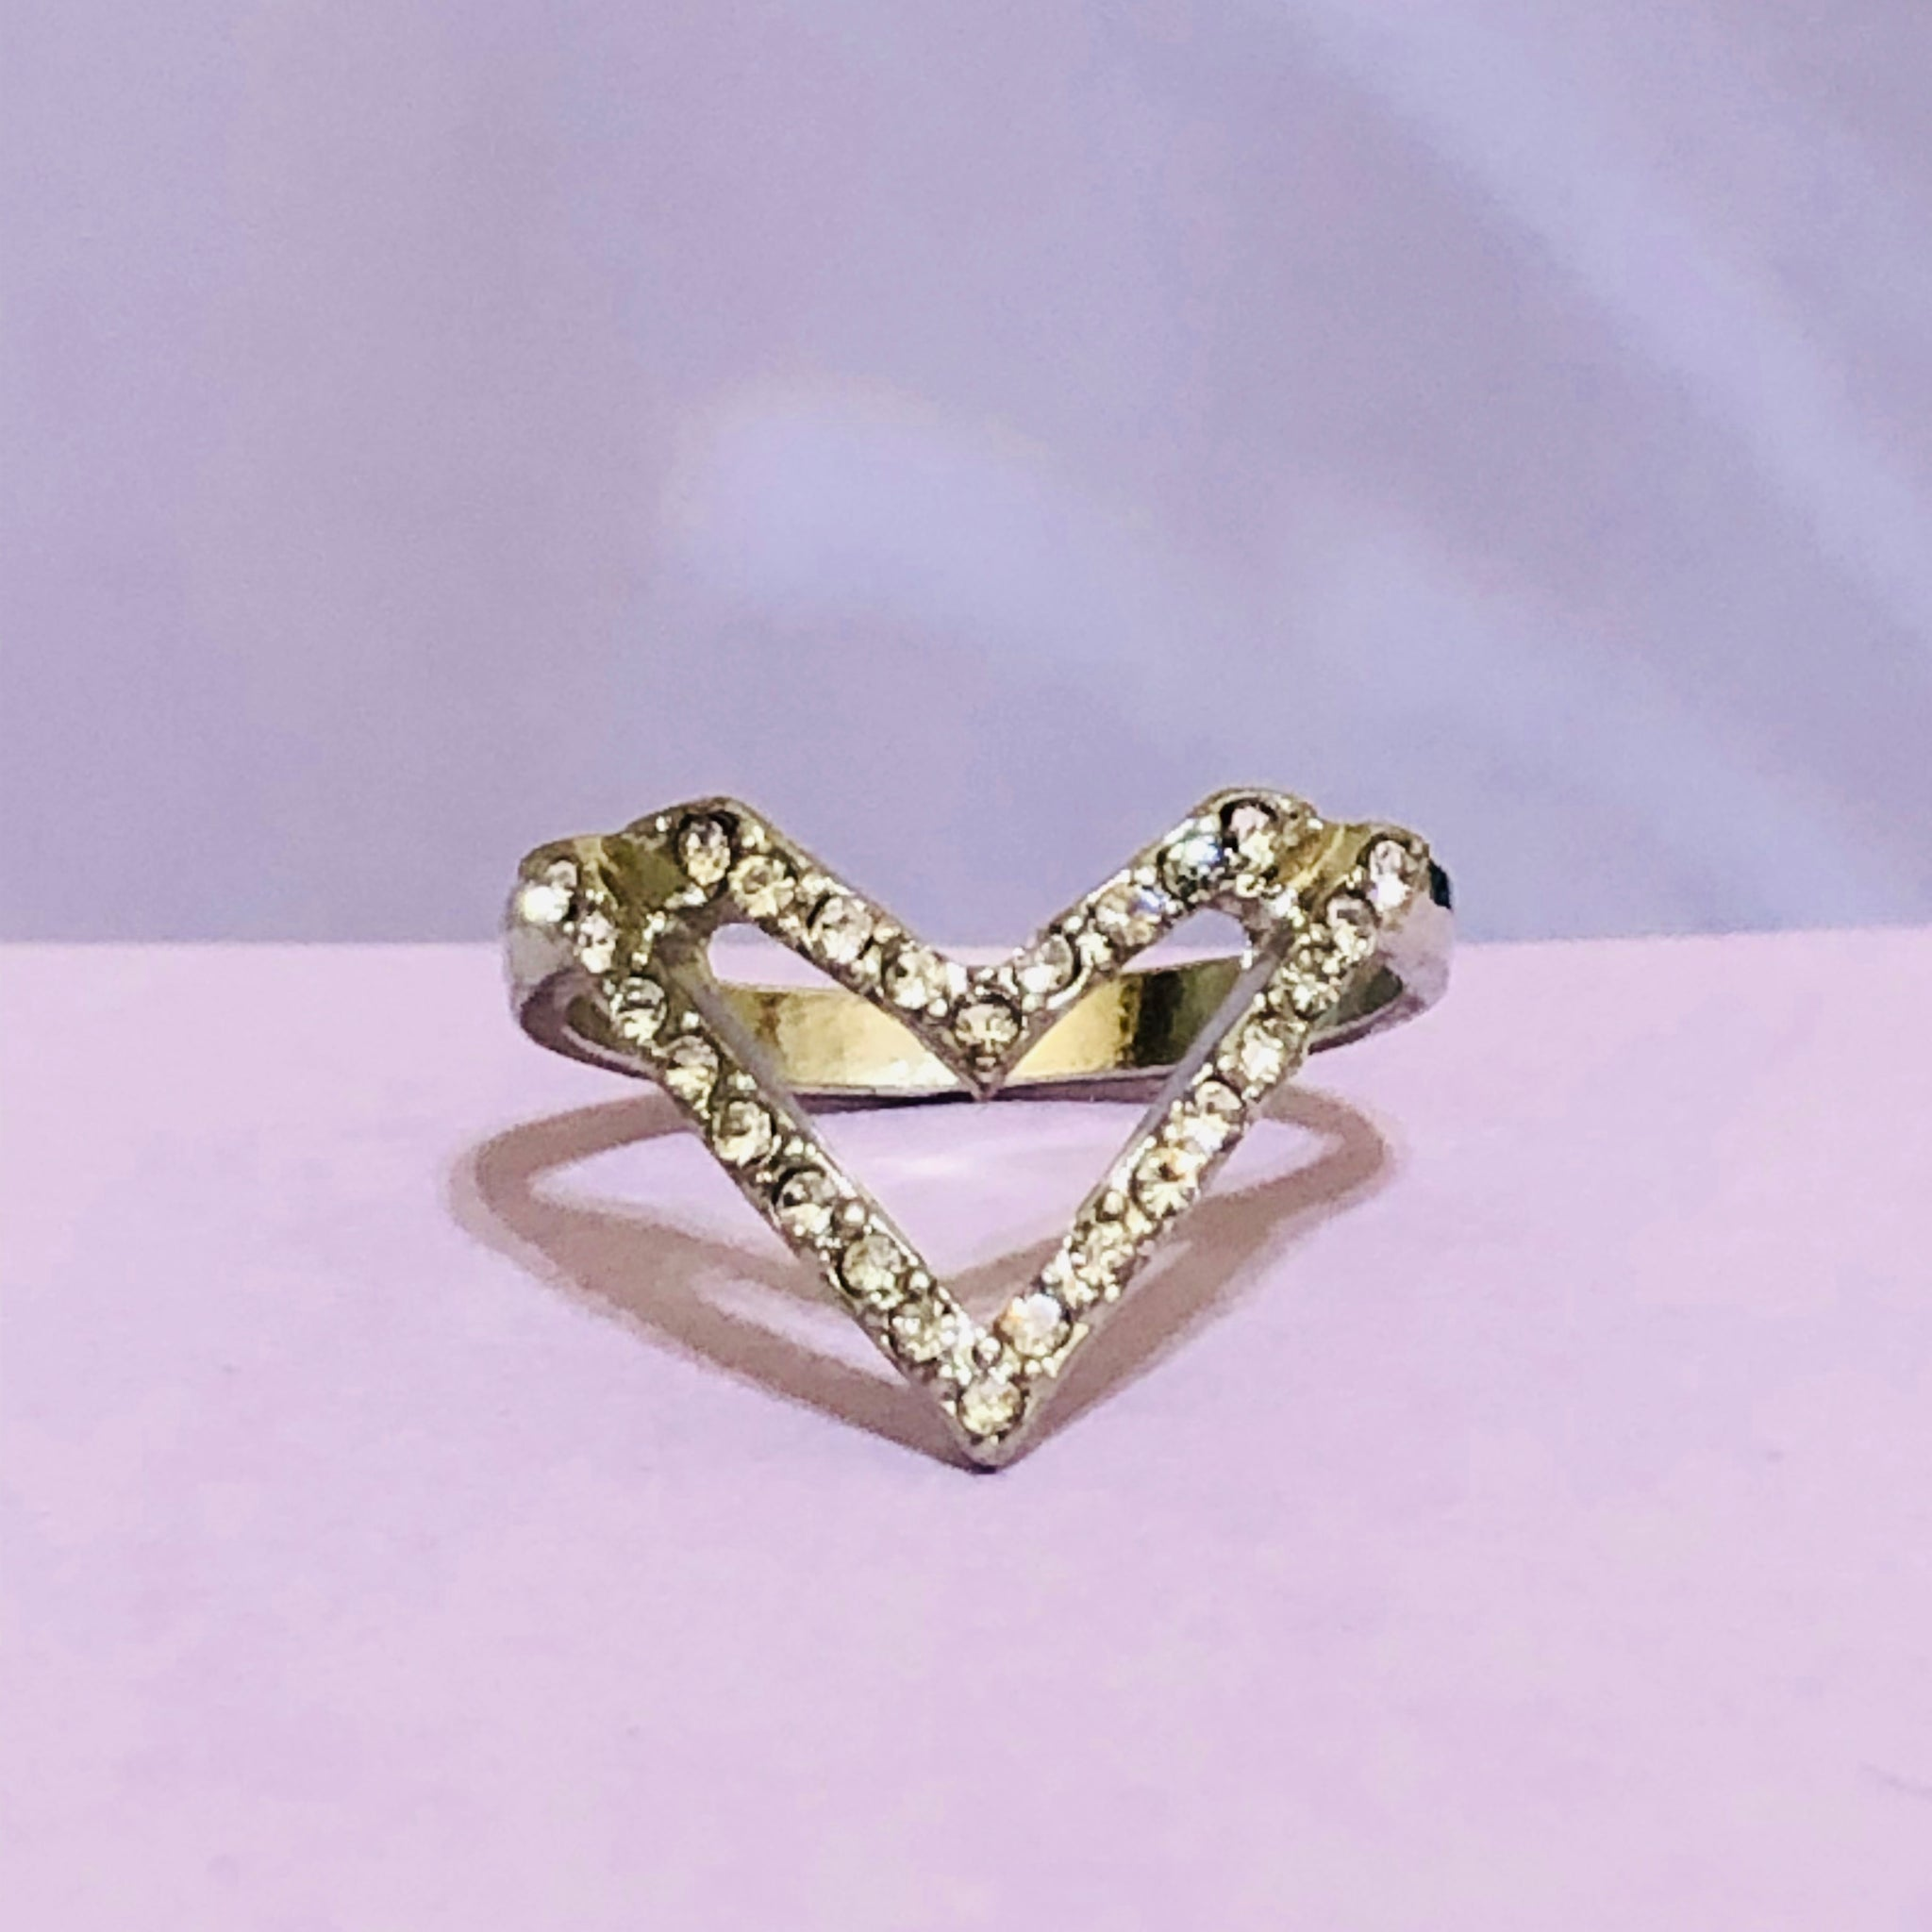 Silver Heart Shaped Fashion Ring